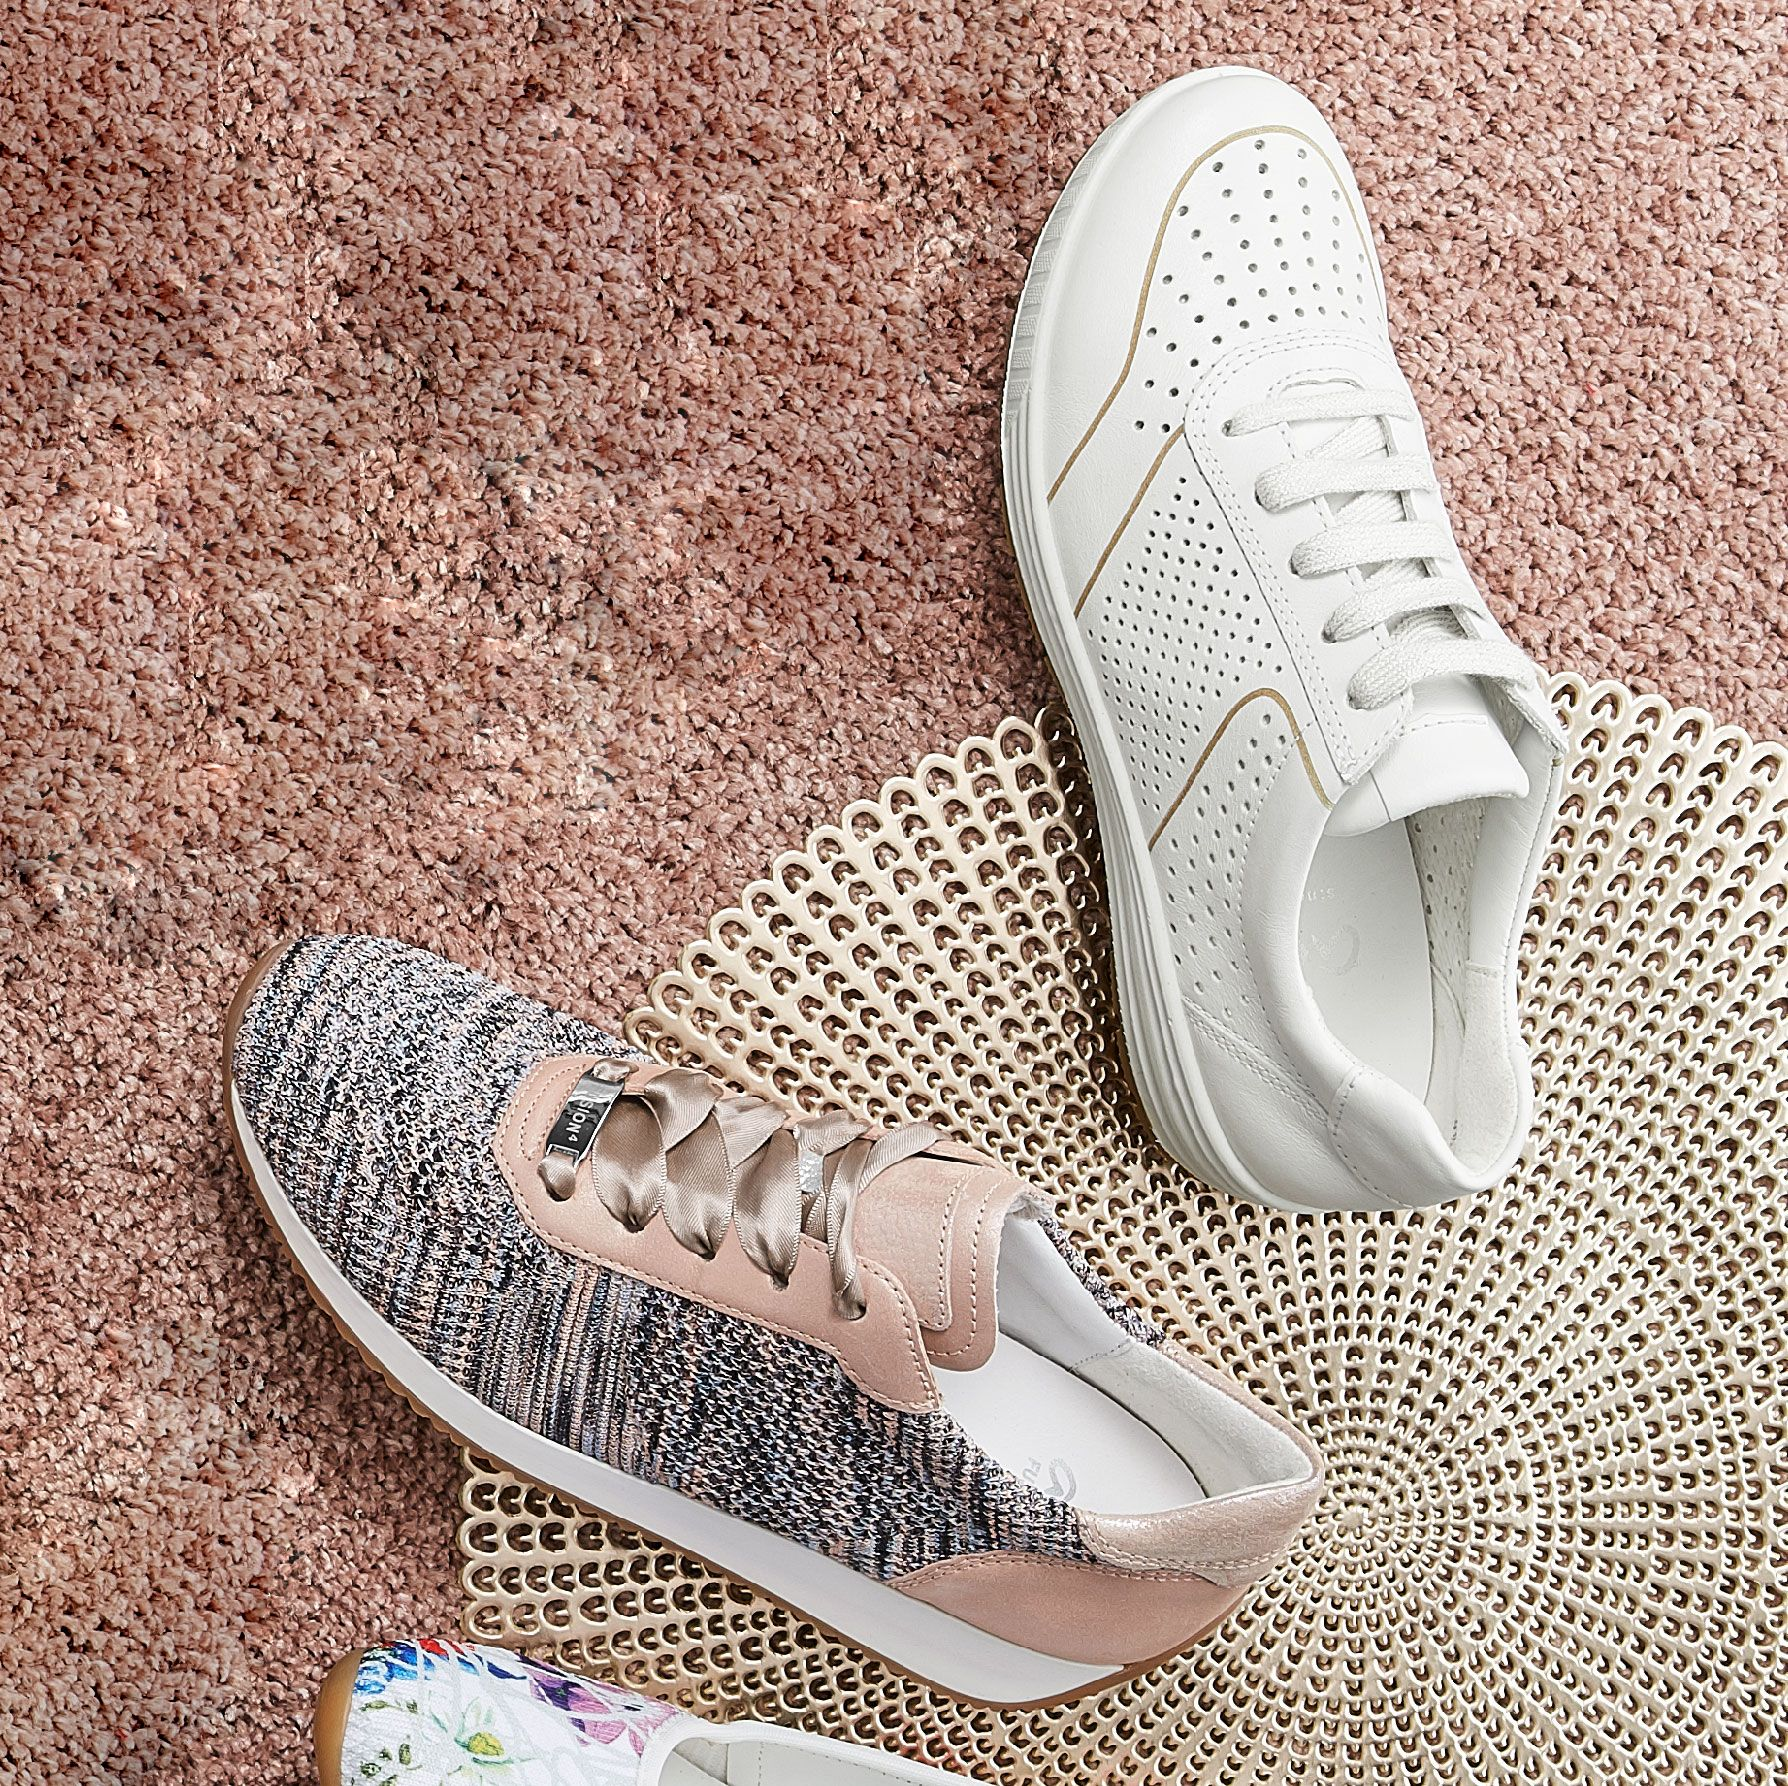 fresh sneakers suitable for orthotics